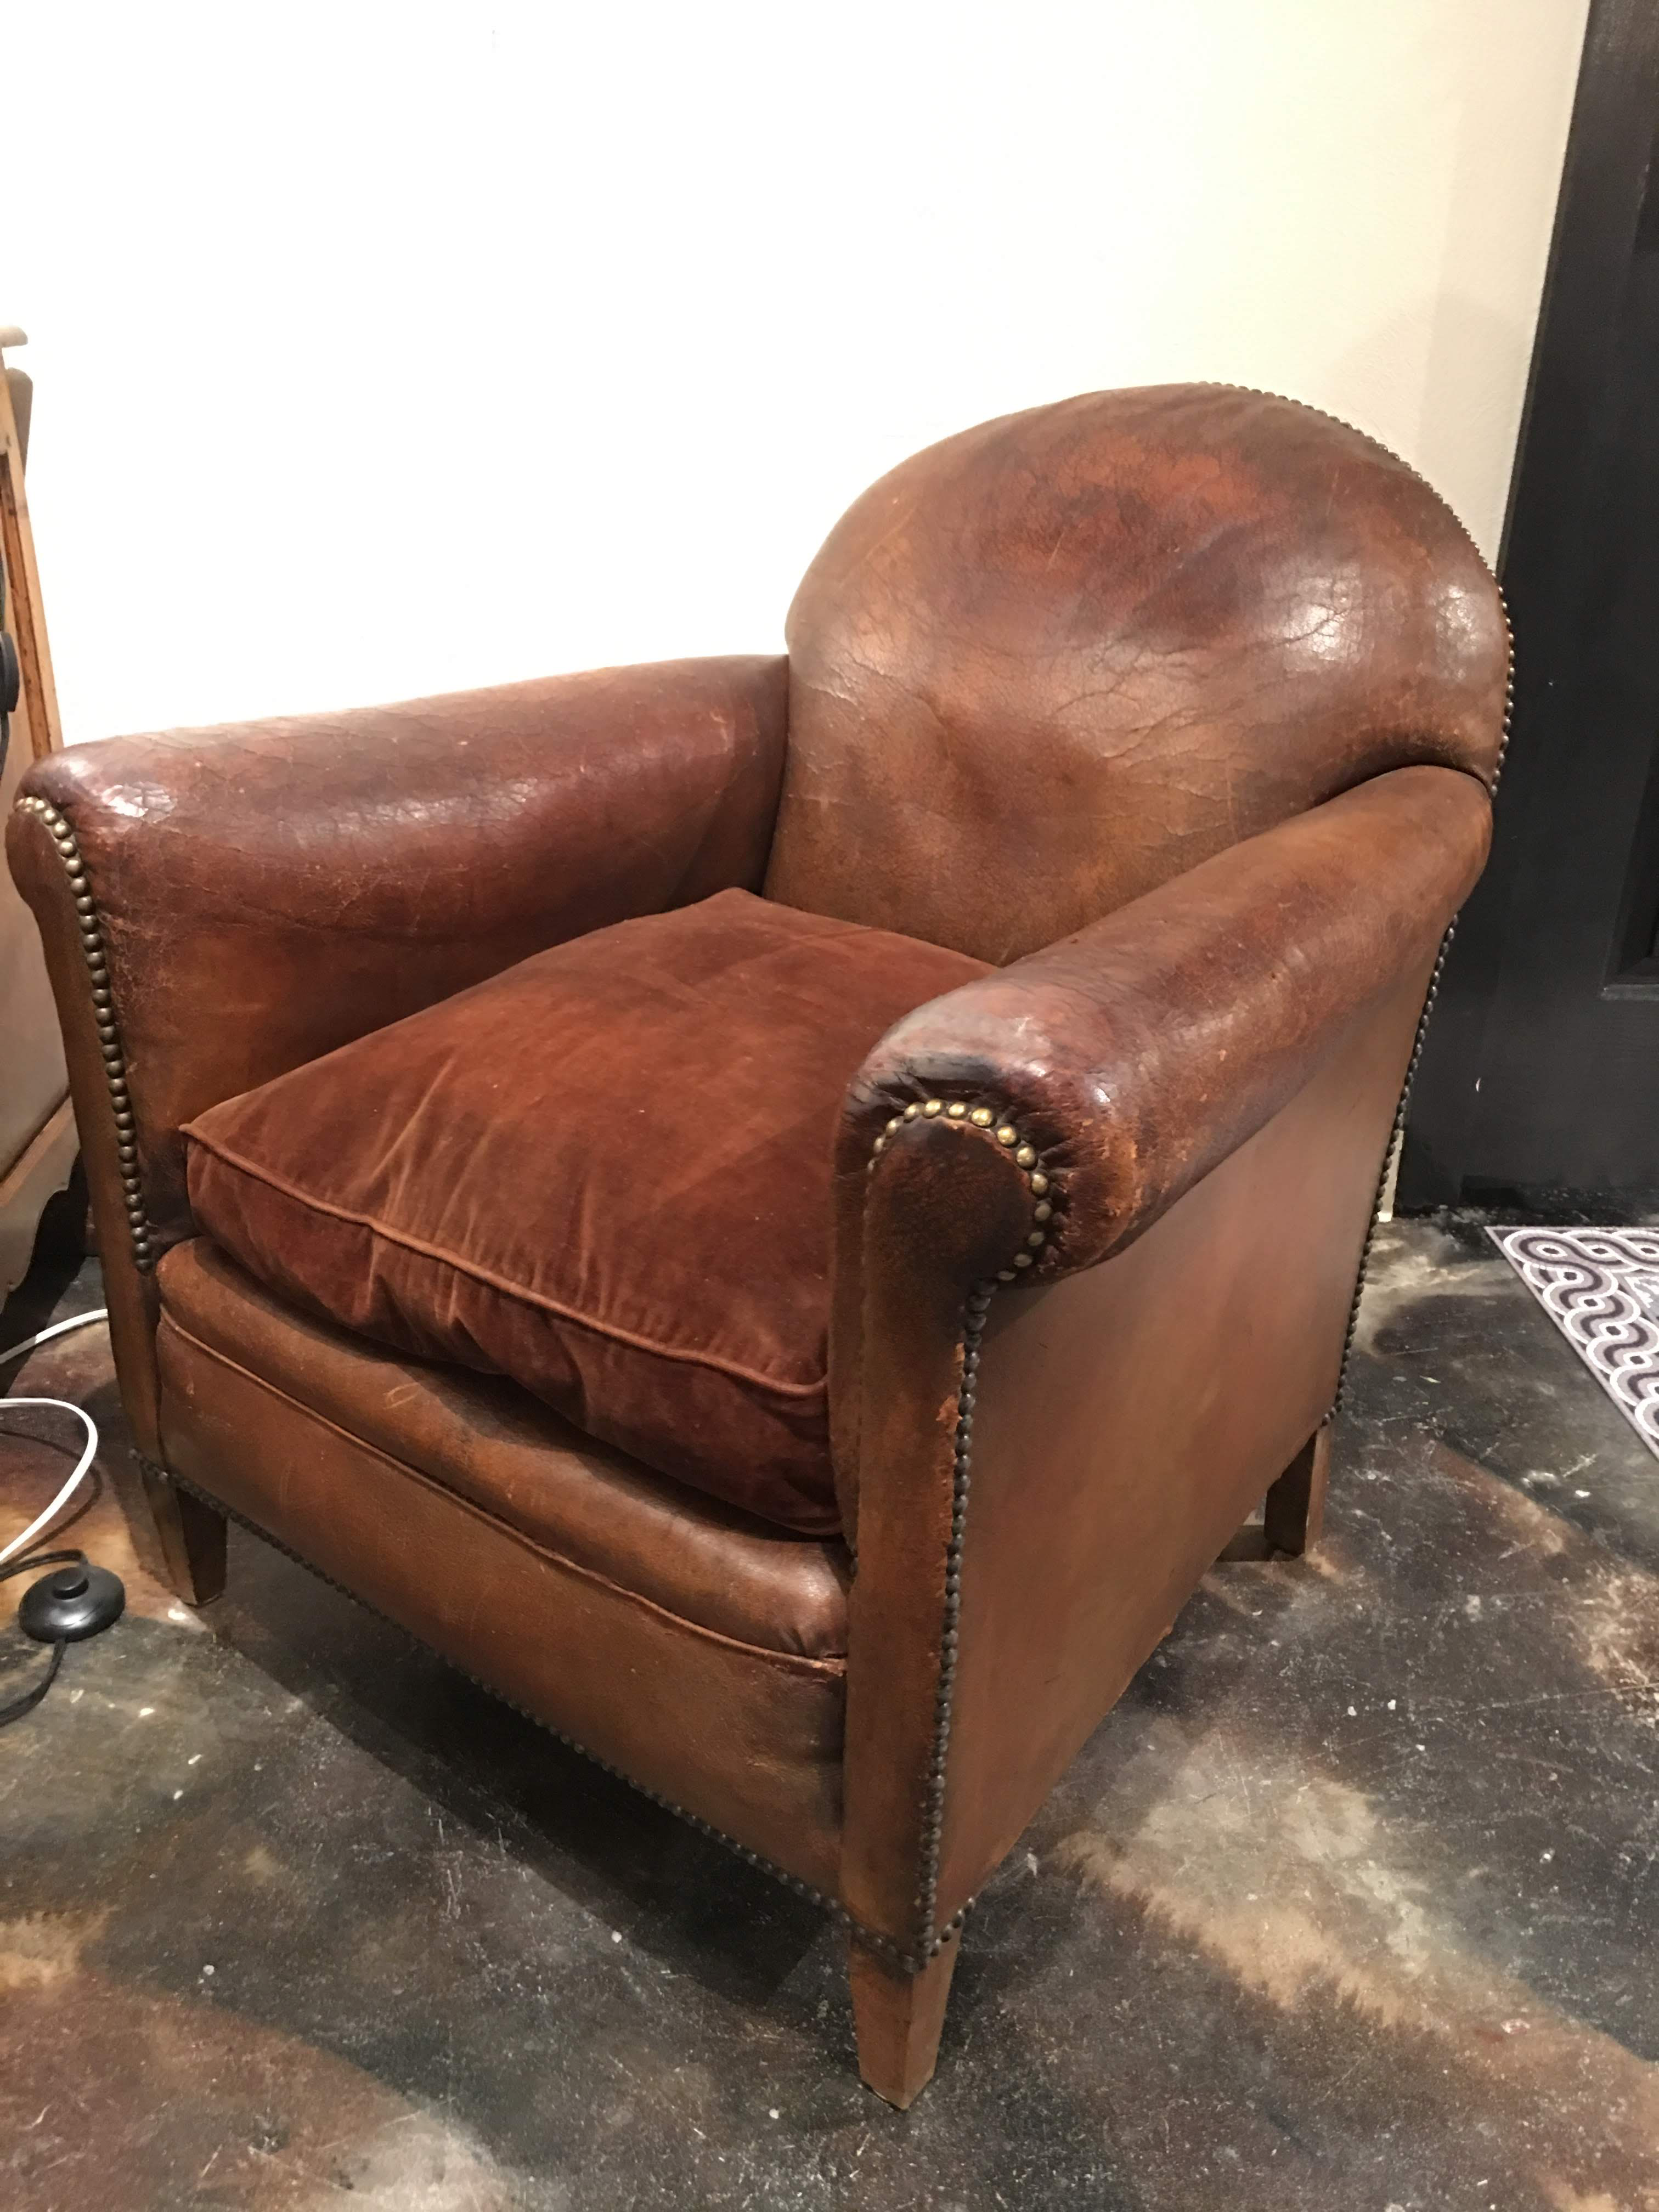 1920s Vintage Leather French Armchair In 2019 Chairs Armchair